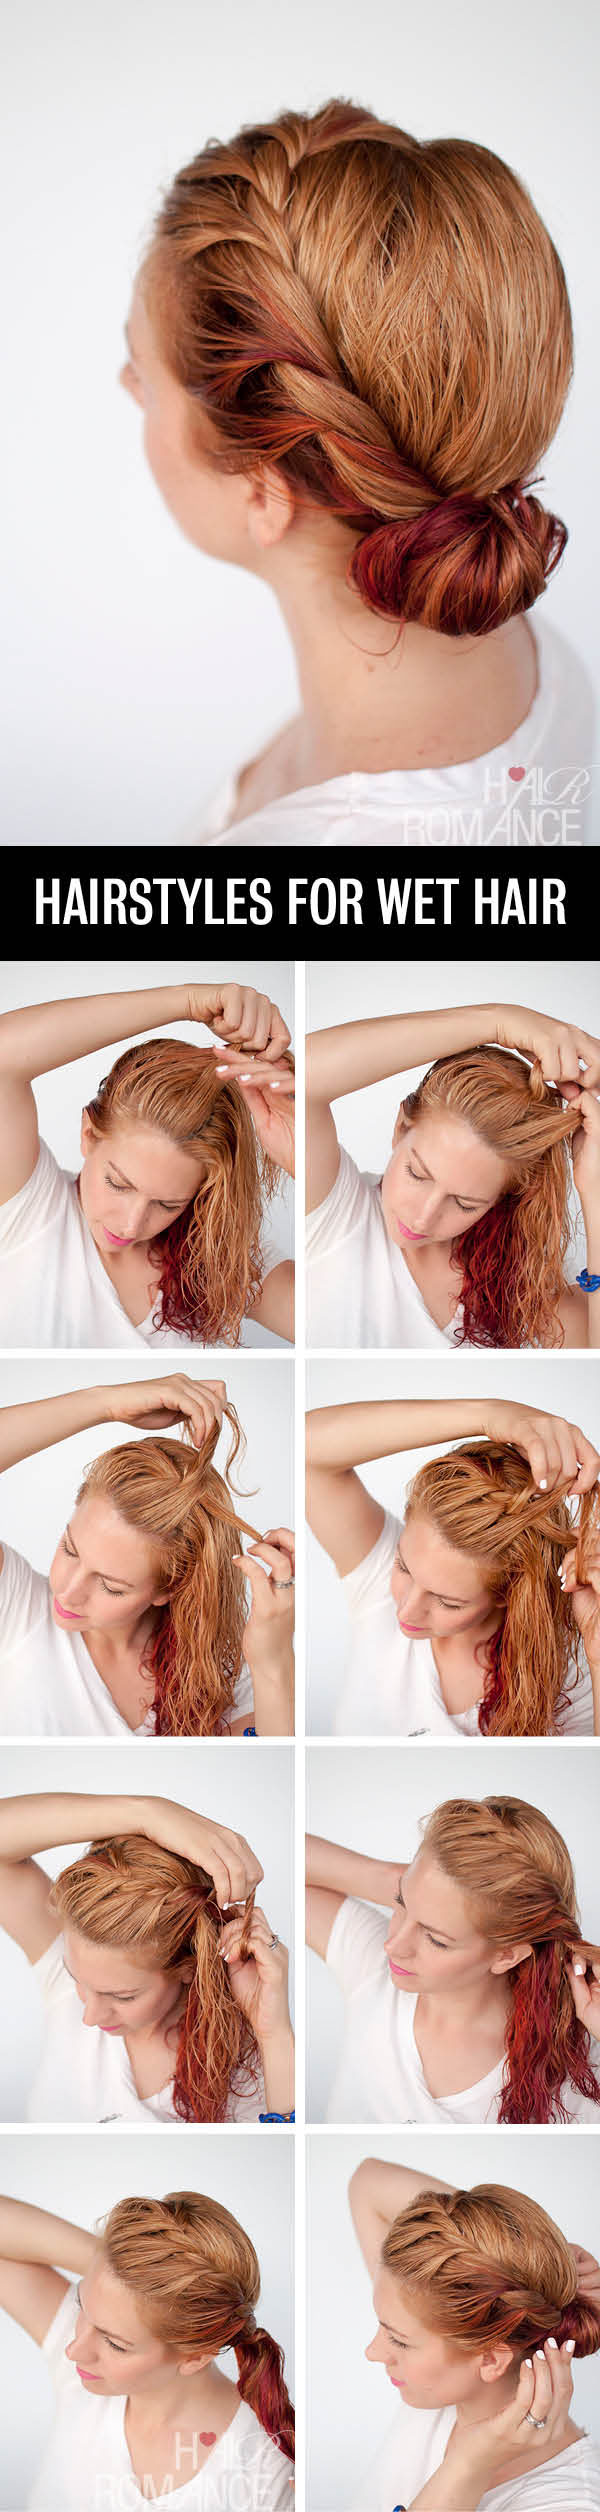 Cute Hairstyles For Wet Straight Hair : Get ready fast with easy hairstyle tutorials for wet